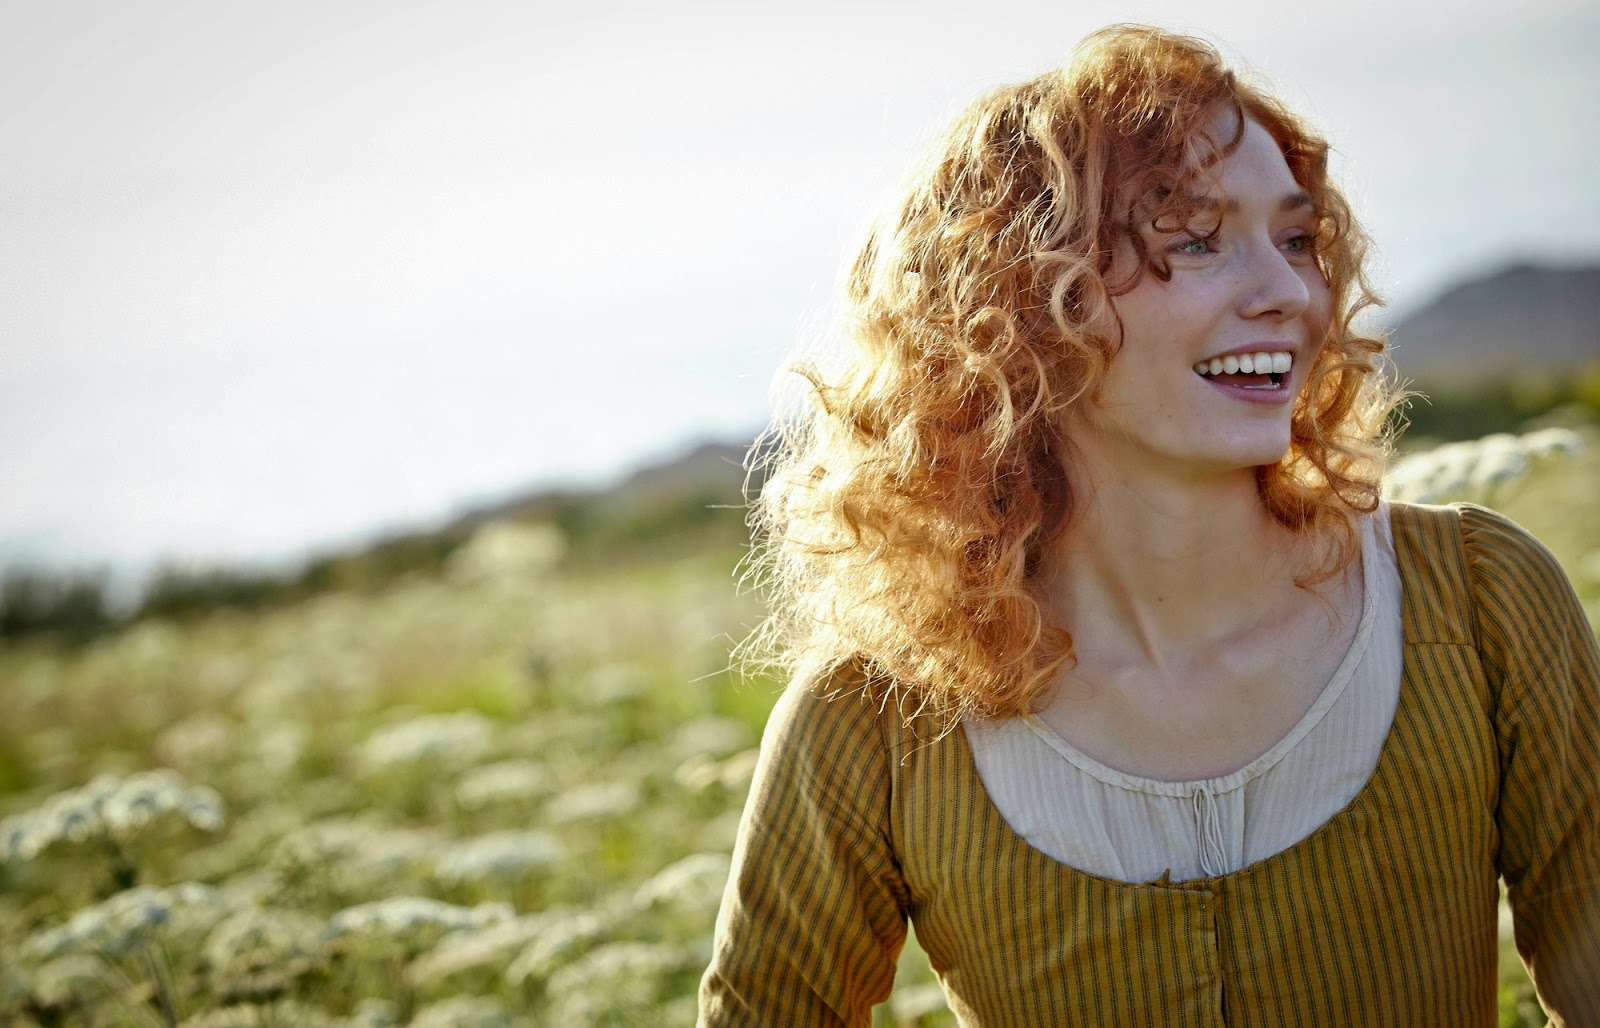 Eleanor Tomlinson as Demelza on the BBC series, Poldark